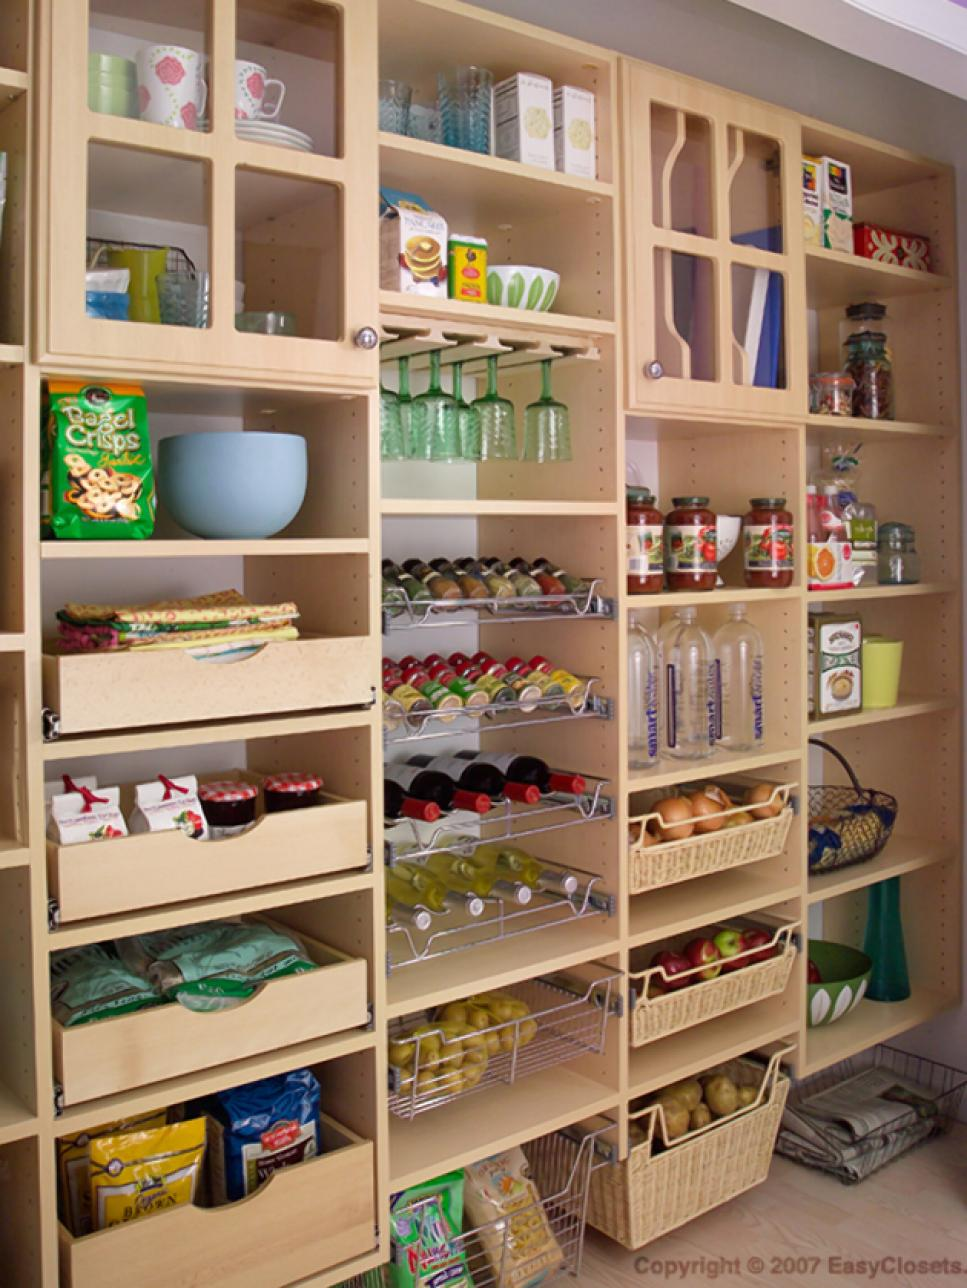 New pantry organizers standalone solution clrsjnt